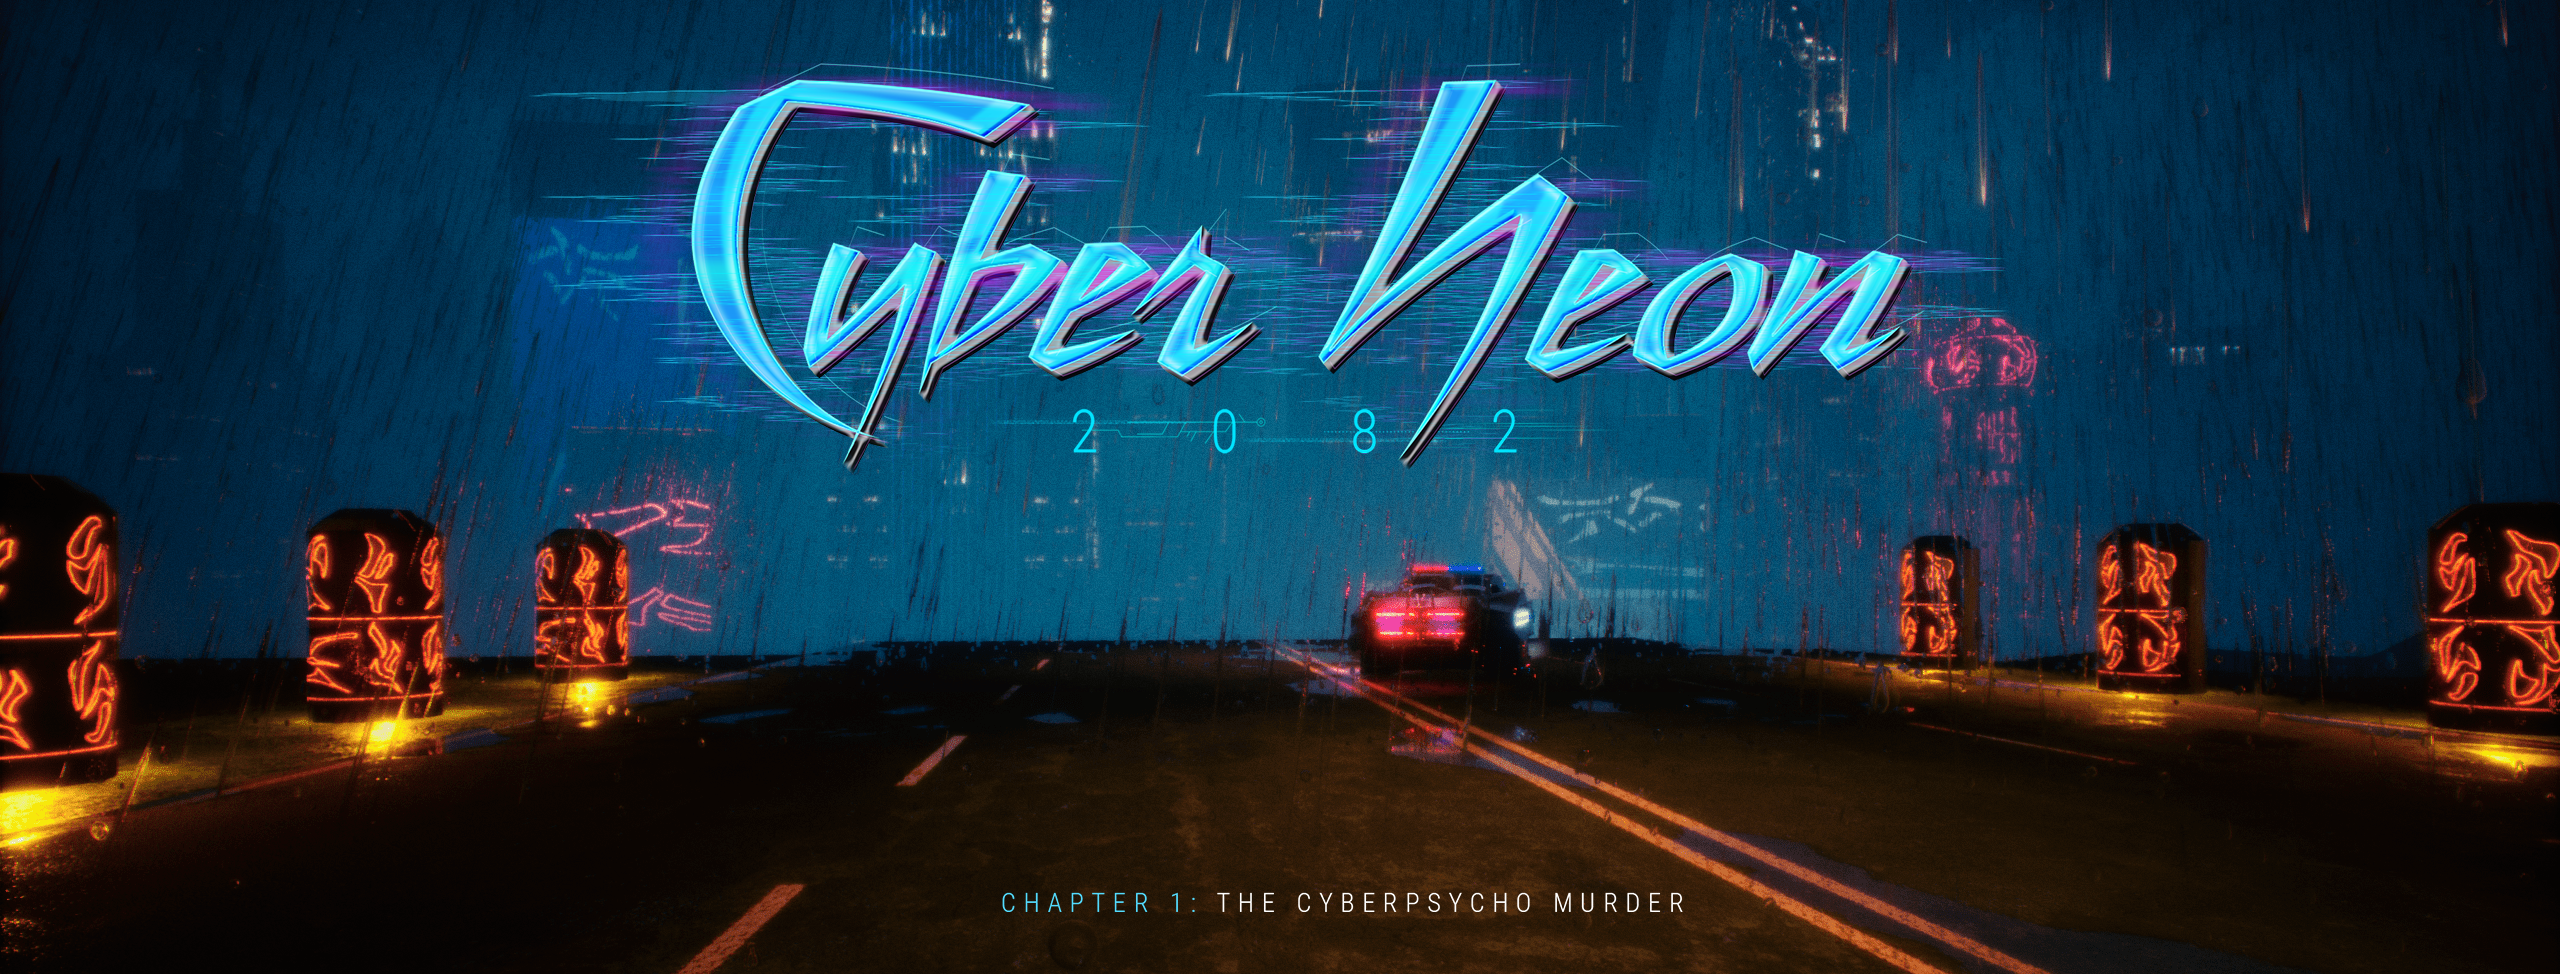 CyberNeon 2082 – Chapter 1: The CyberPsycho Murder